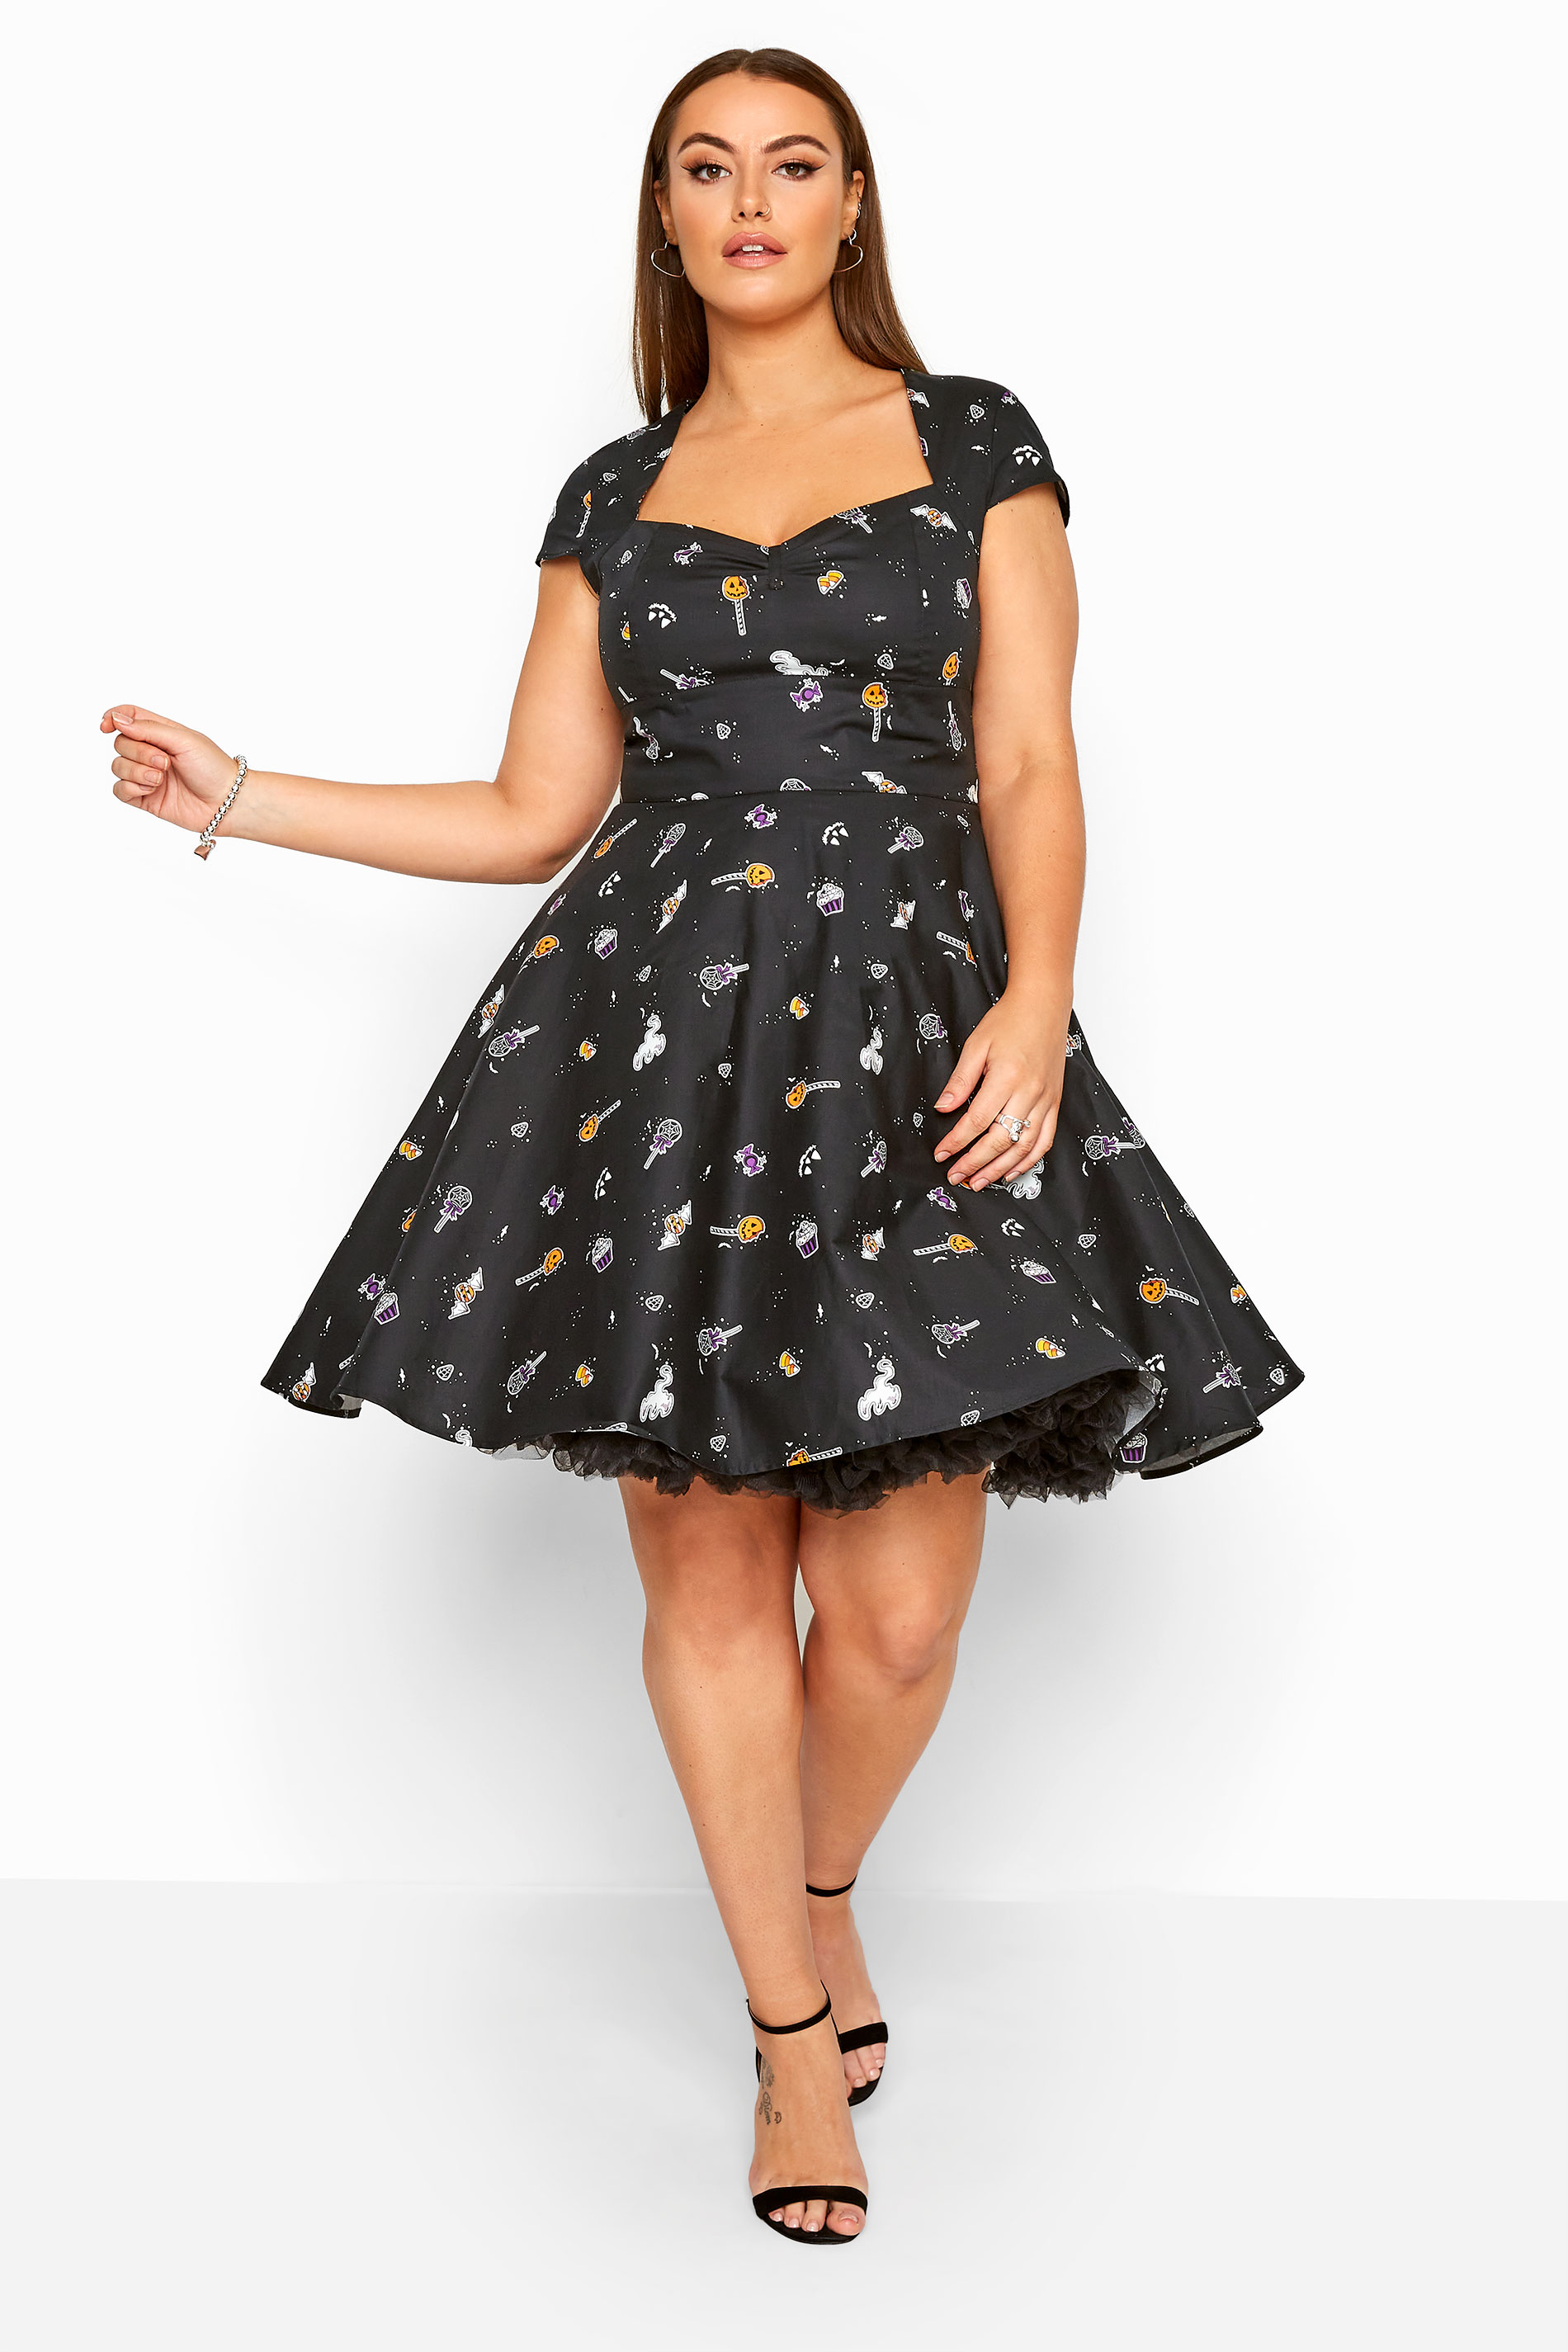 HELL BUNNY Black 'Trick Or Treat' Dress